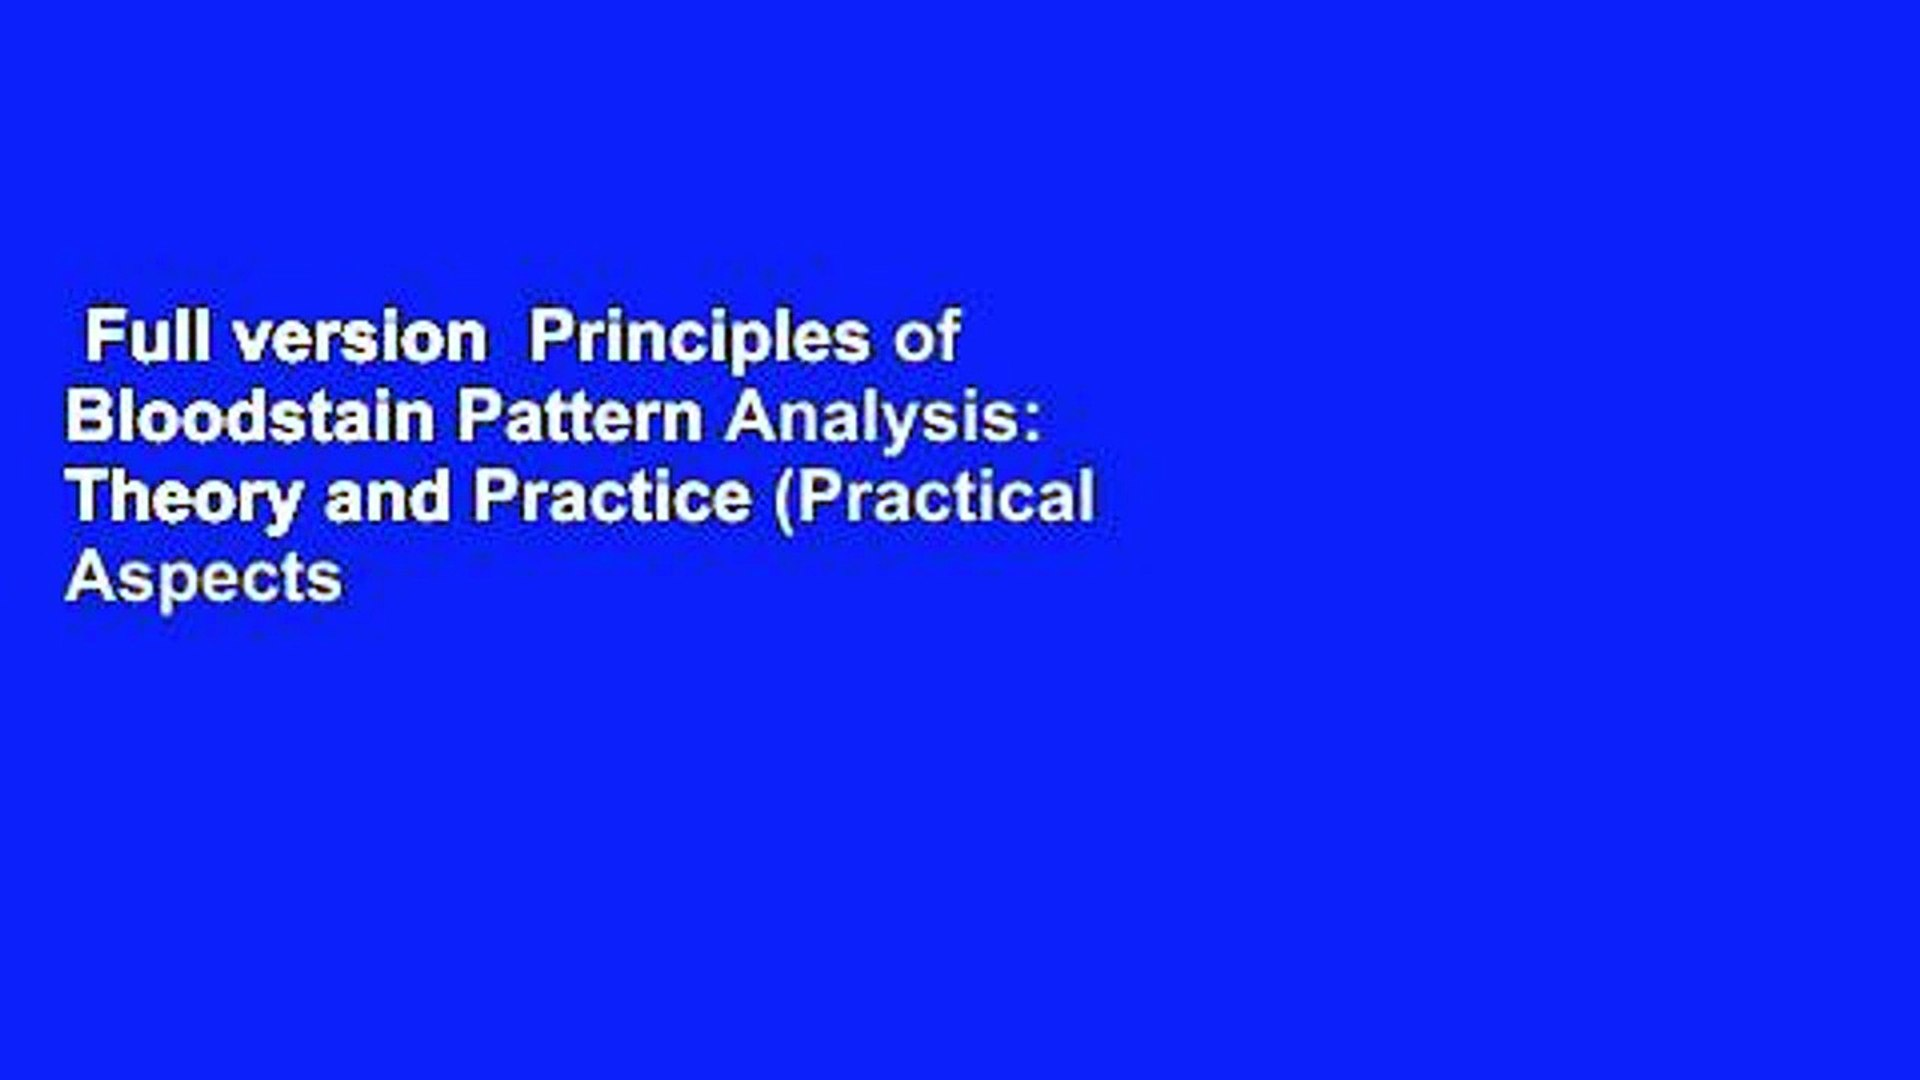 Full version  Principles of Bloodstain Pattern Analysis: Theory and Practice (Practical Aspects